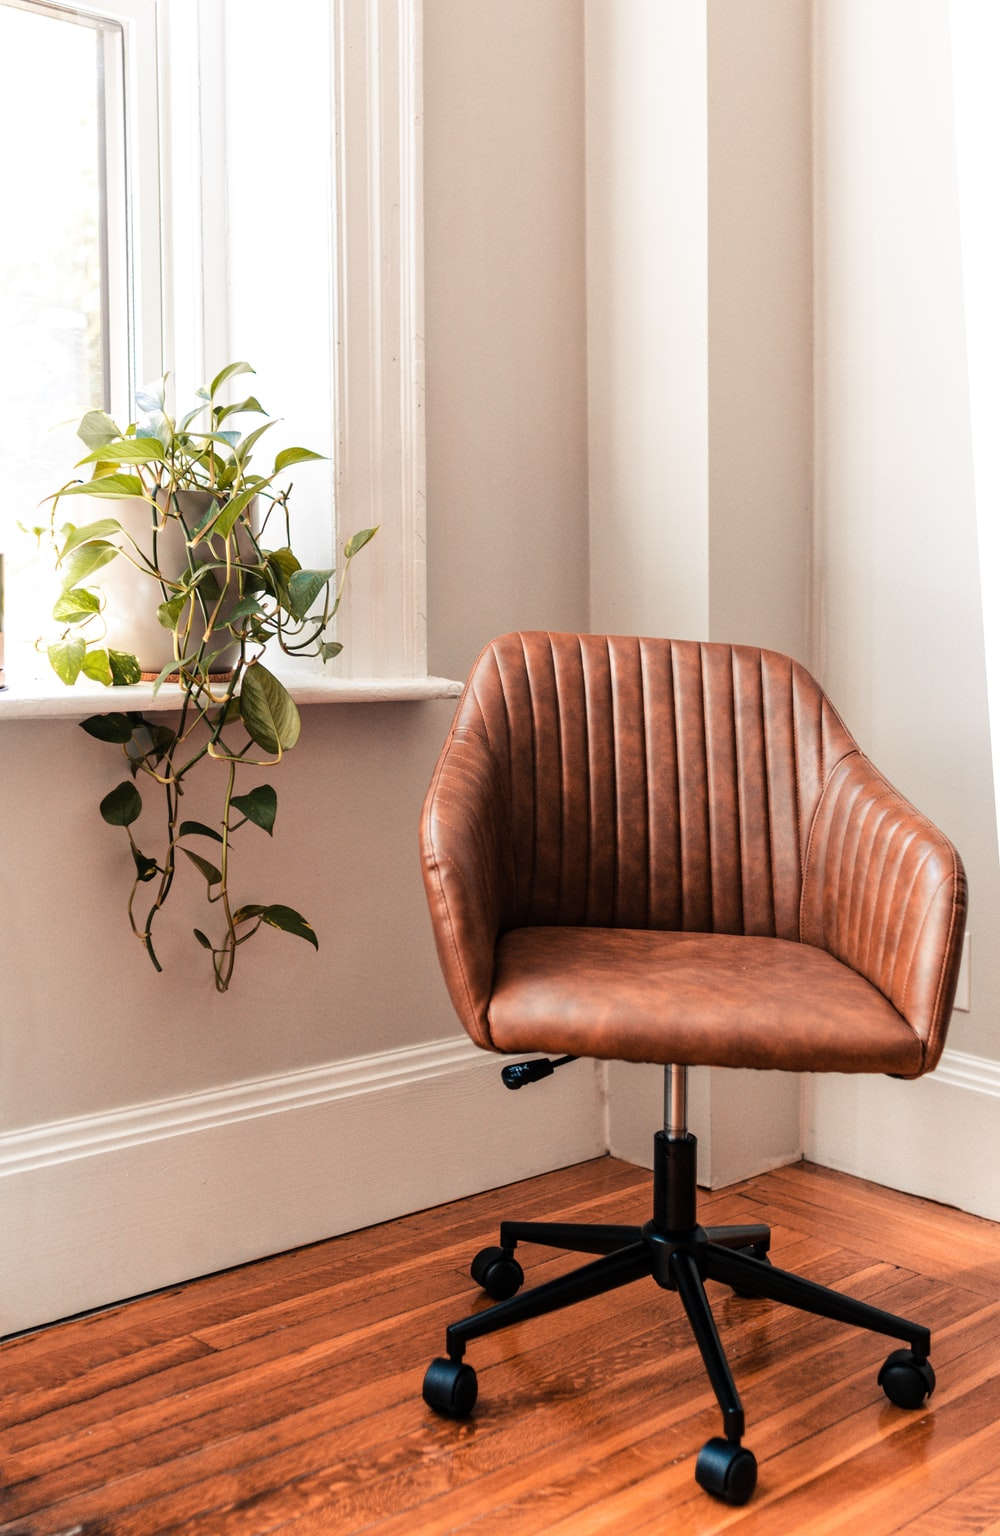 brown and black rolling chair beside green plant